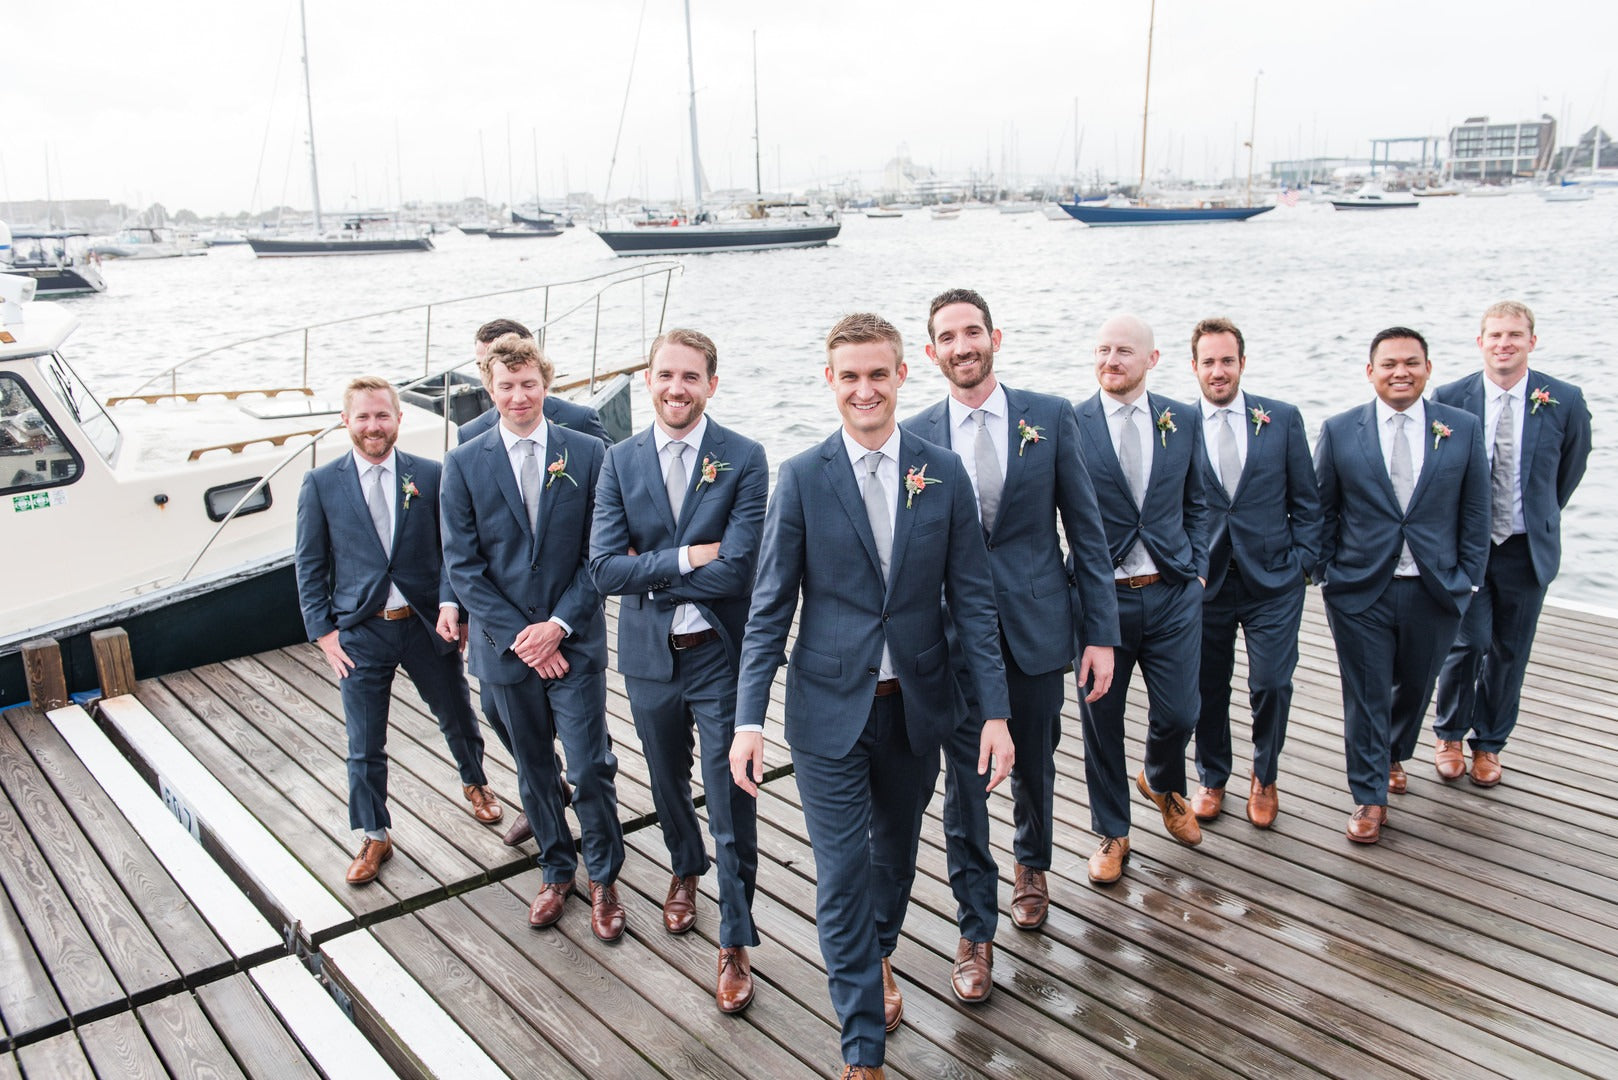 Groom and Groomsmen | A Scenic Wedding Off the Coast of Rhode Island | Kate Aspen